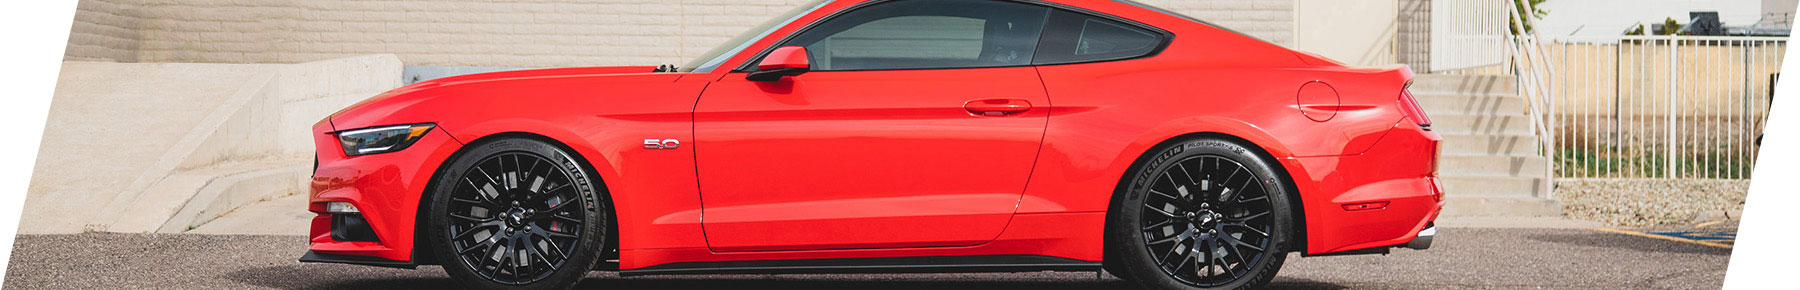 2015-2020 Mustang GT 5.0L Performance Parts & Accessories